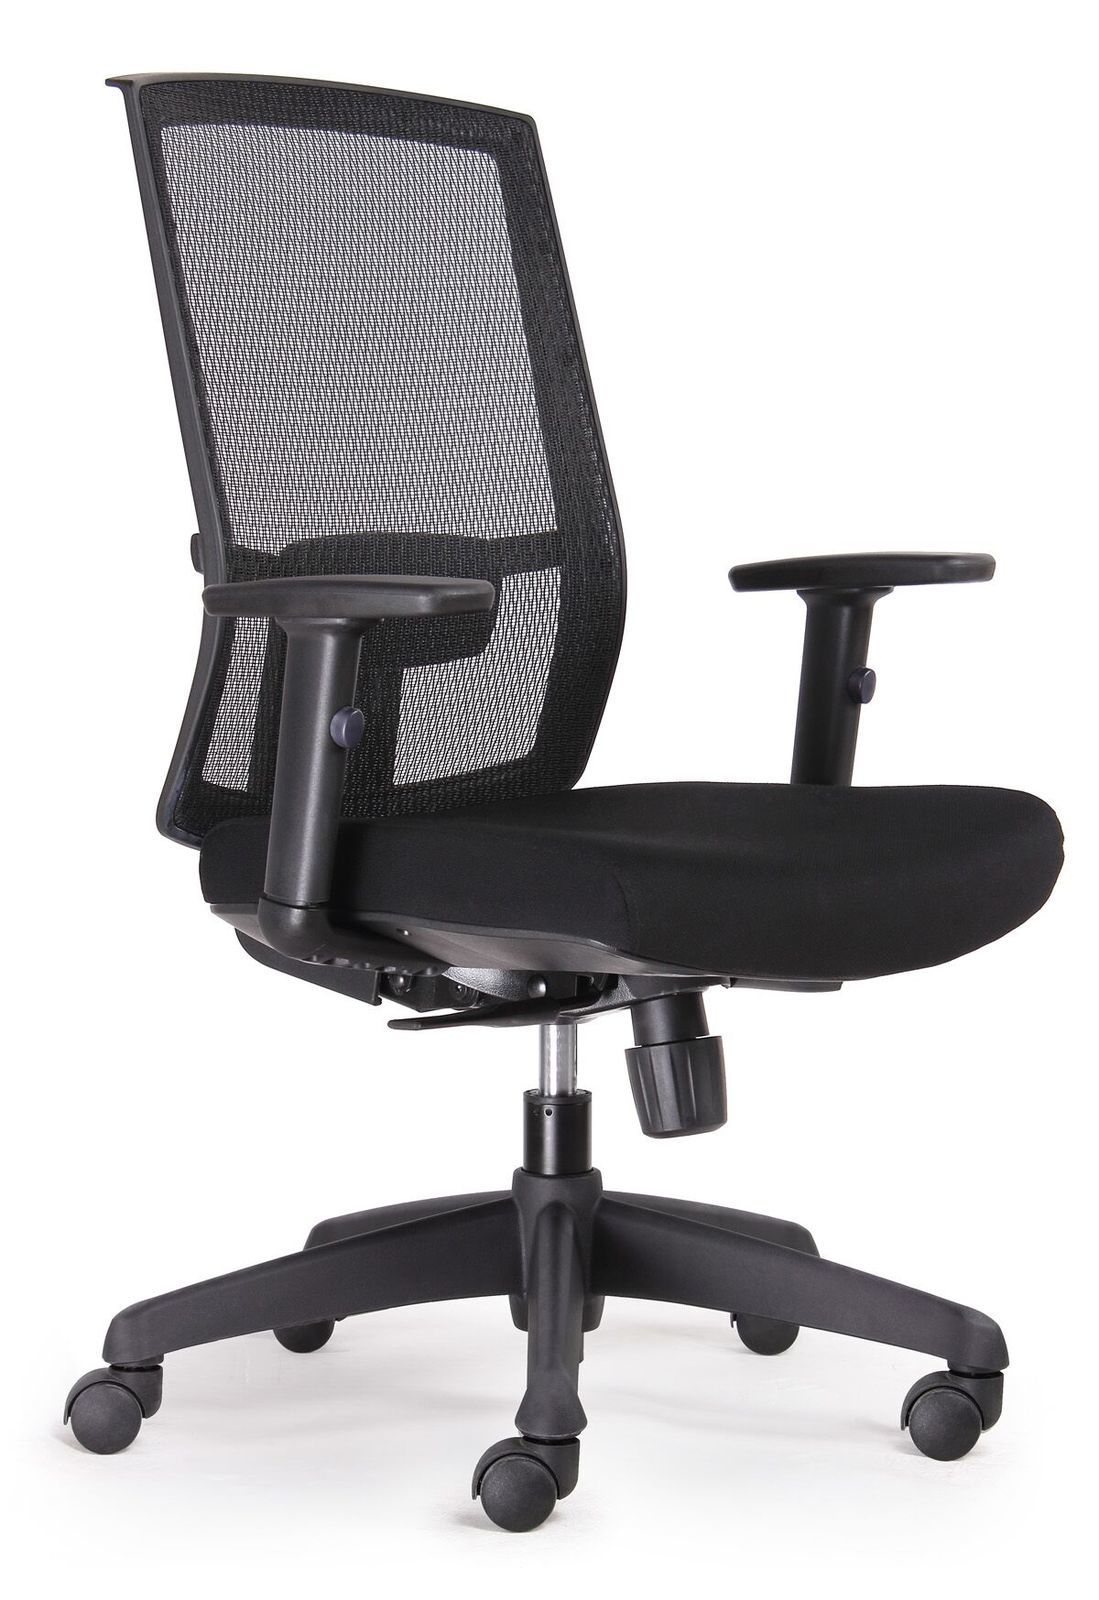 ergonomic chair description lowes rail tile kal black promesh mesh high back task office stock